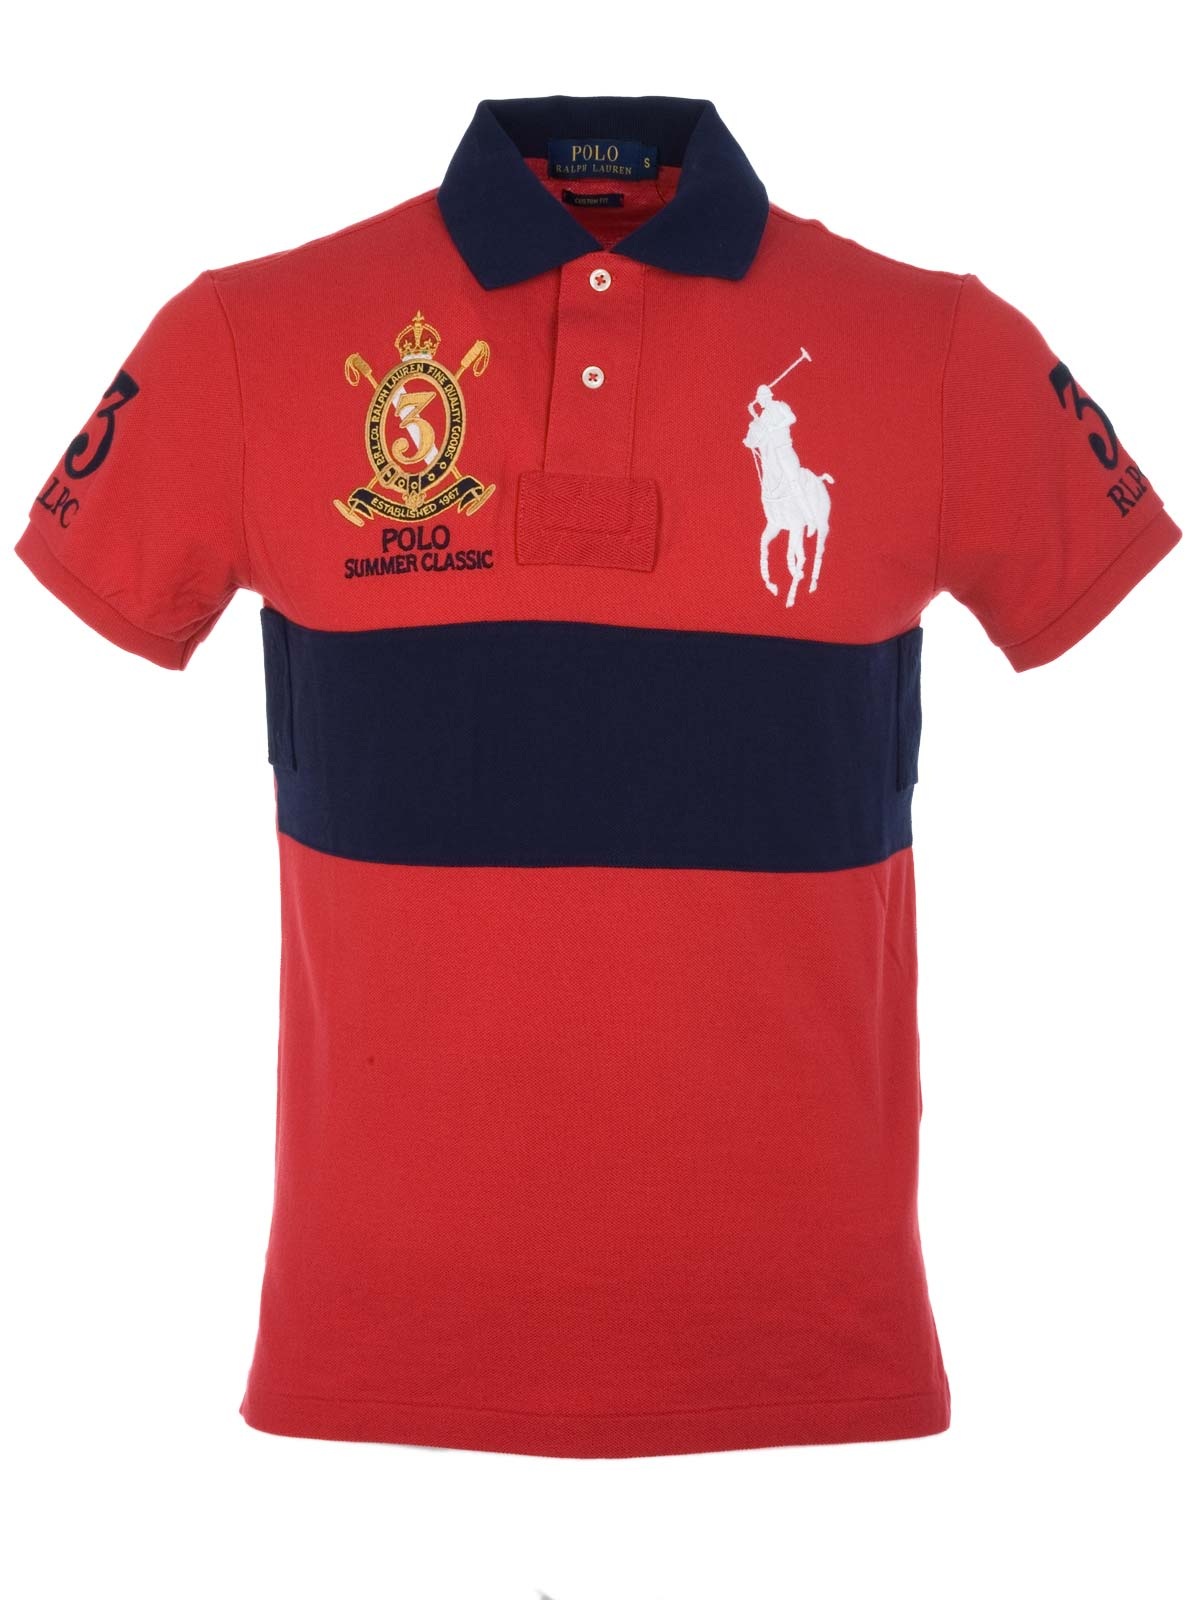 polo ralph lauren summer classic polo shirt a6412 a12kcn94c8312 botta b online store. Black Bedroom Furniture Sets. Home Design Ideas